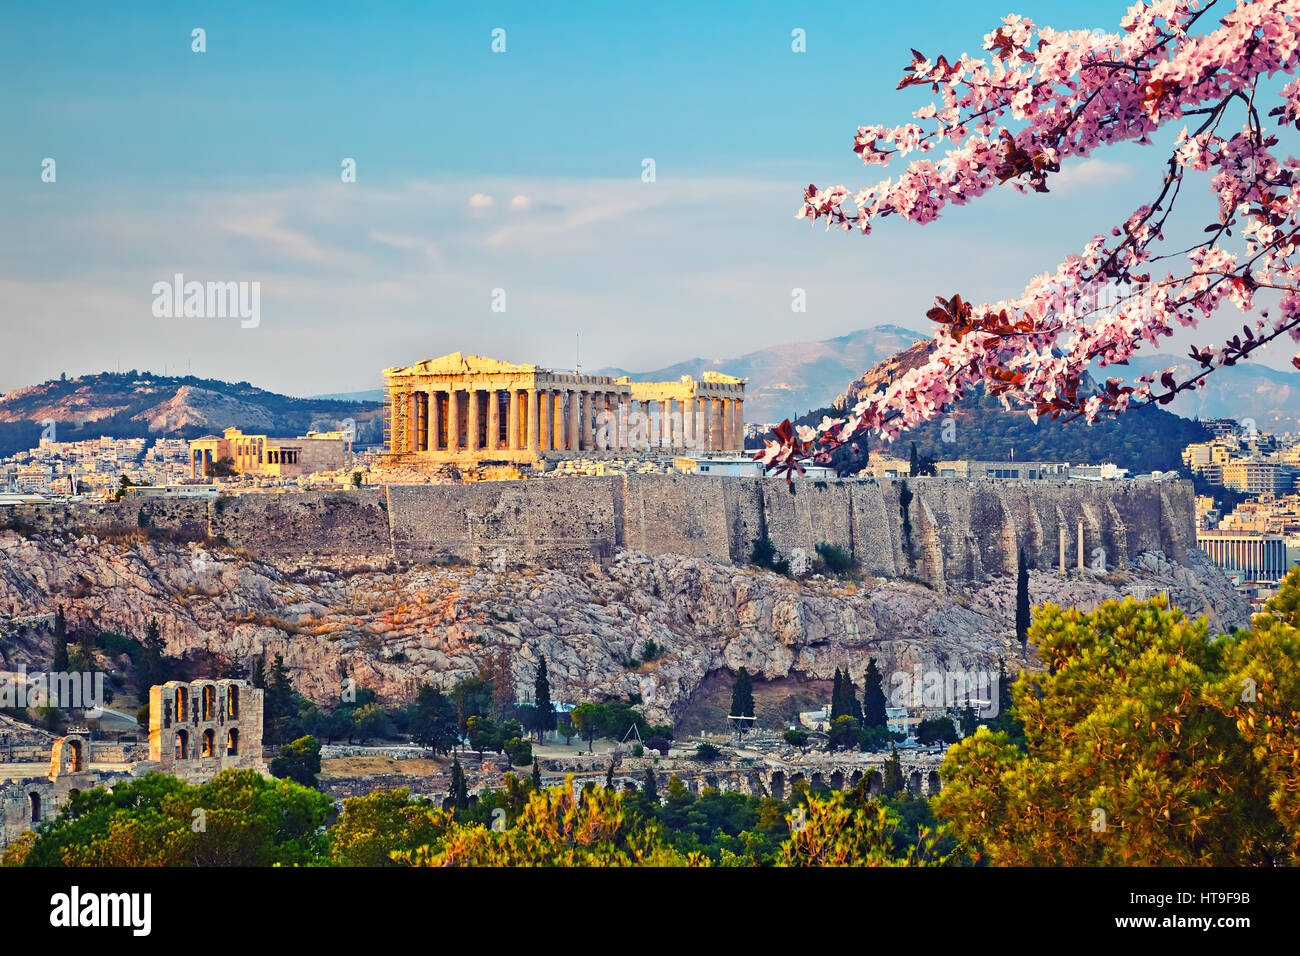 View on Acropolis at sunset, Athens, Greece - Stock Image